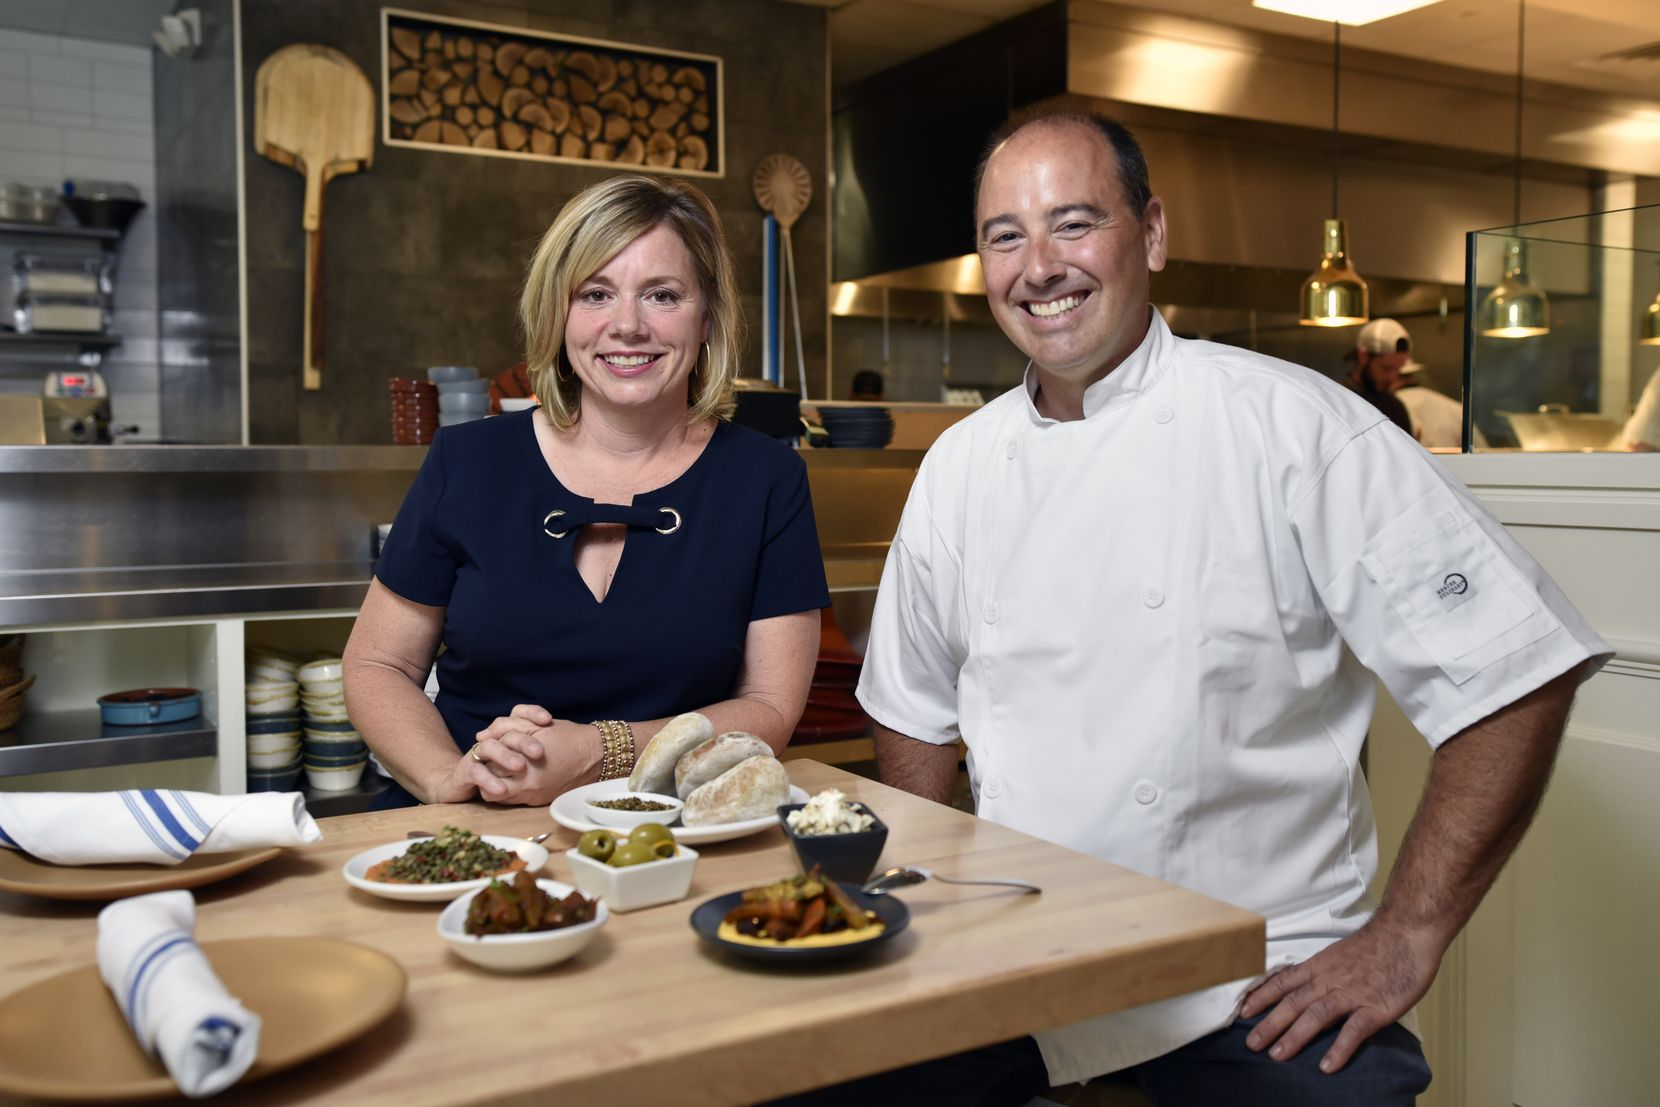 Two years after Allison Yoder and Stephen Rogers opened Sachet, the menu is evolving and better than ever.